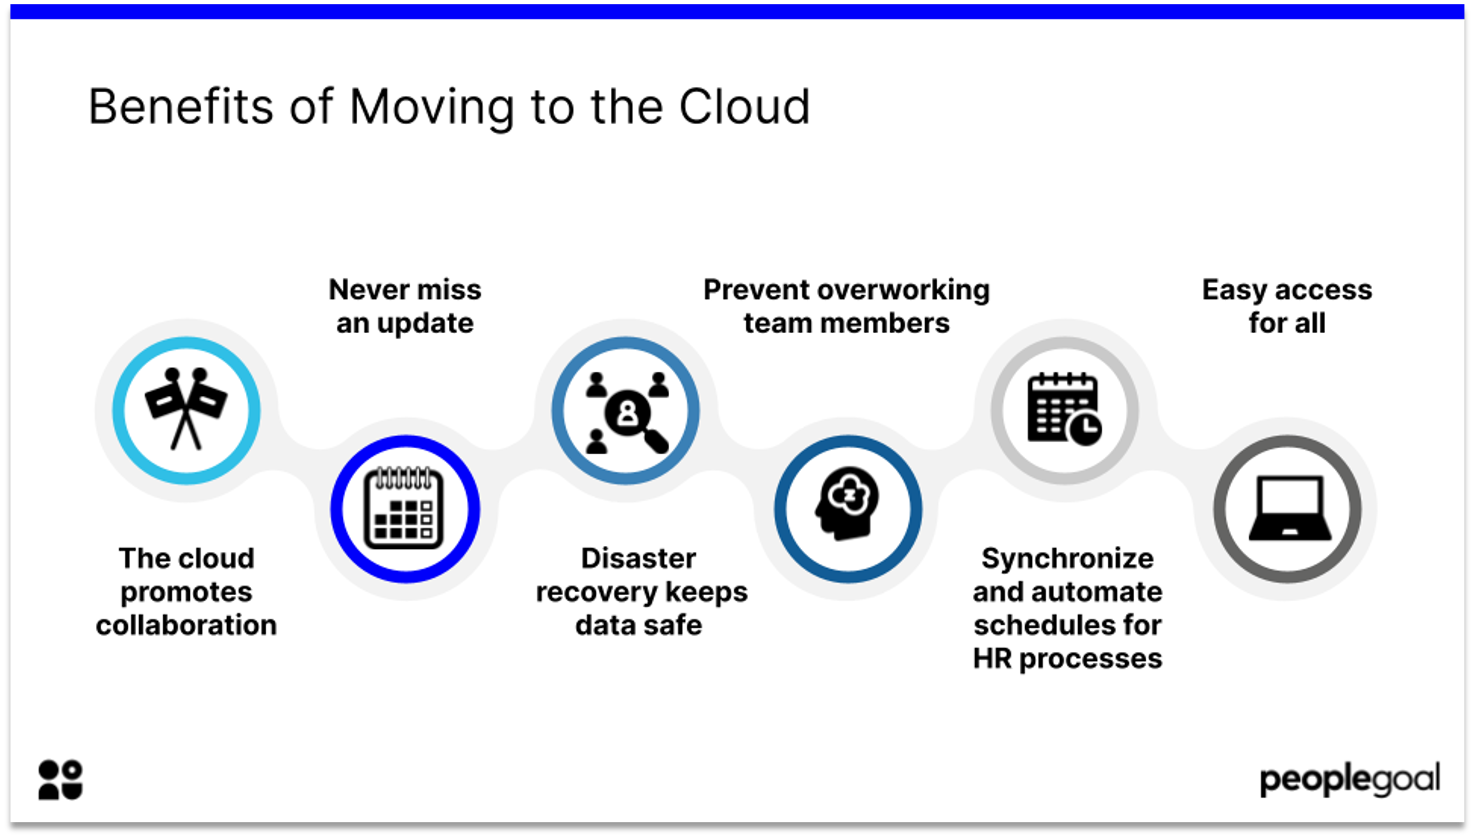 Benefits of Moving to the Cloud